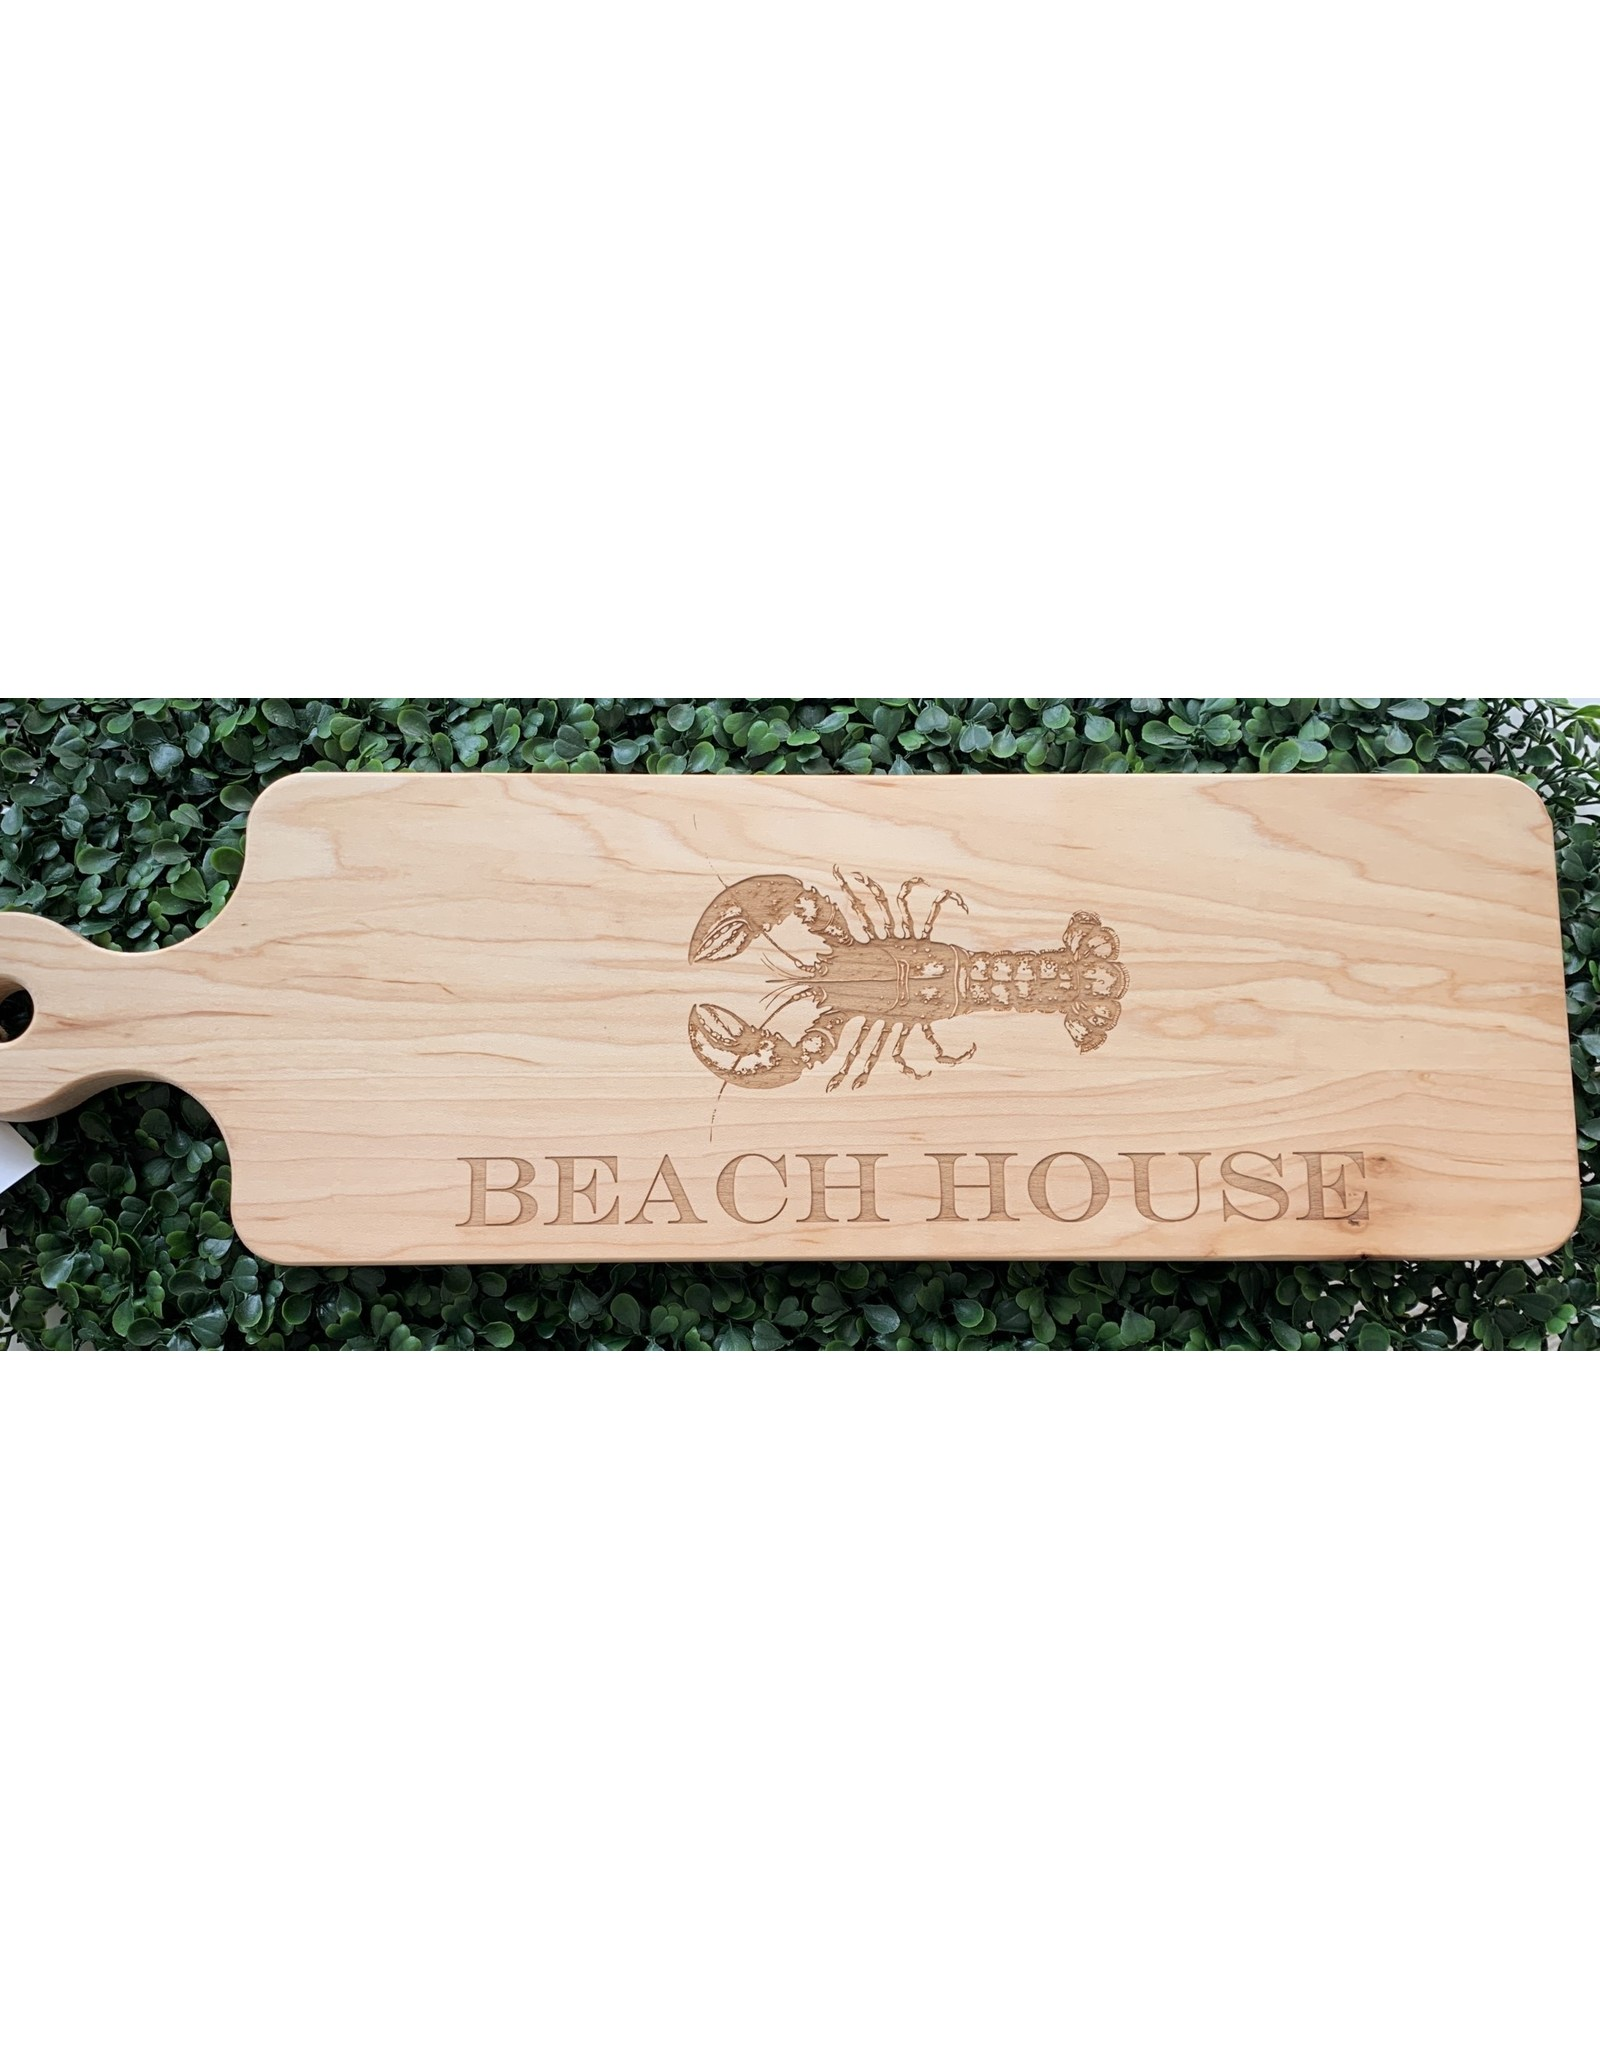 Maple Leaf at Home Beach House with Lobster 20x6 Maple Cutting Board